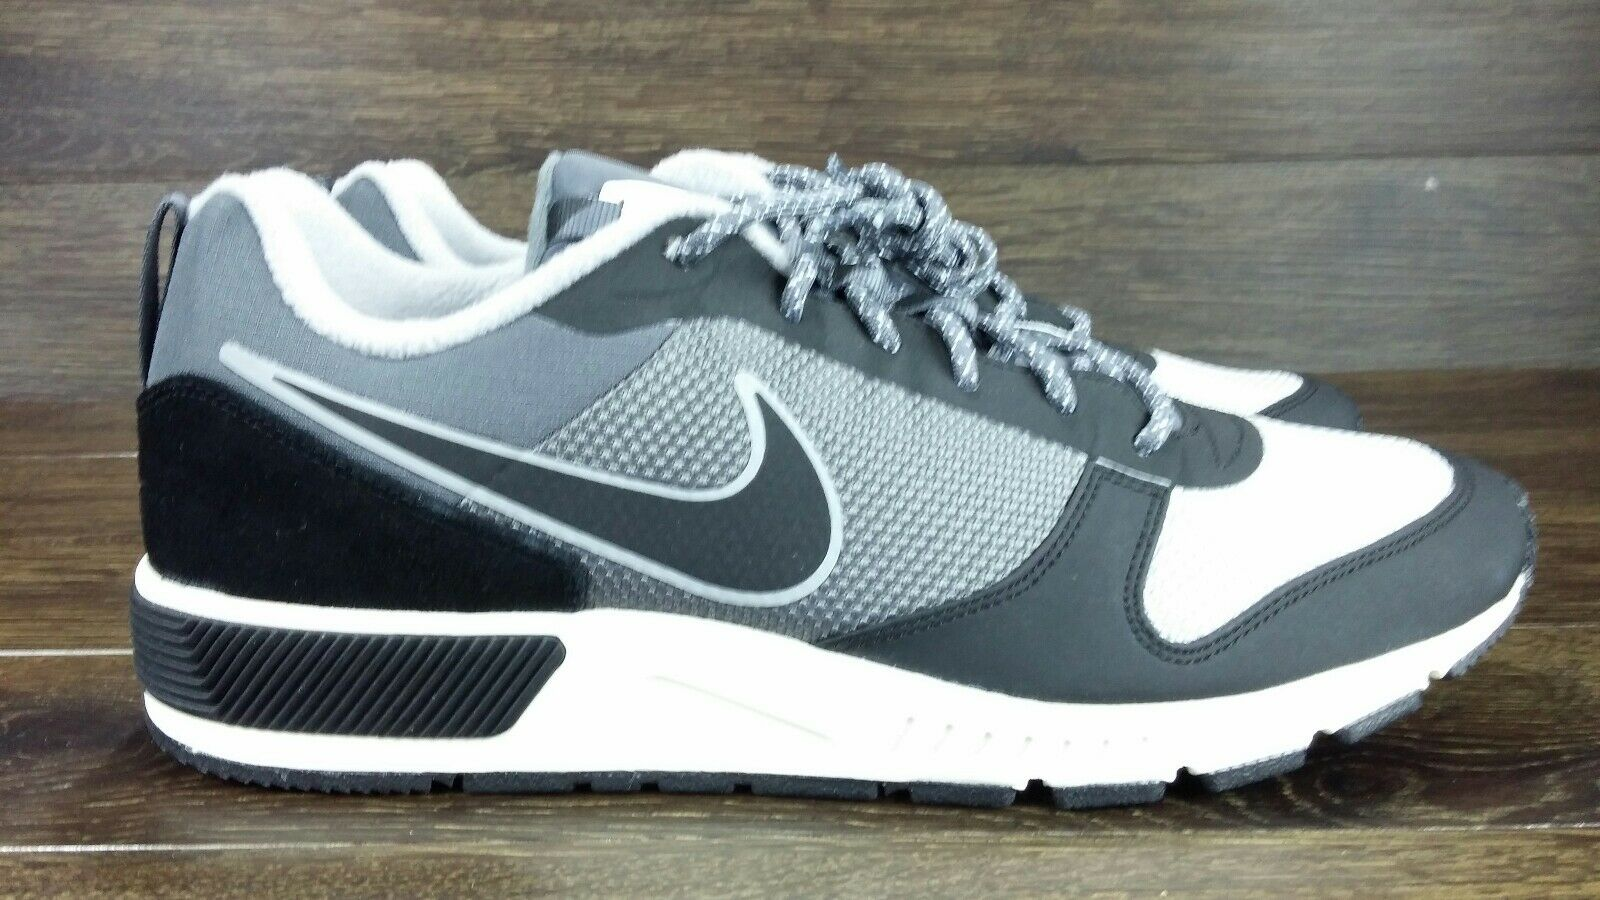 NIKE FACTORY SAMPLE NIGHTGAZER TRAIL GREY WHITE 916775 003 MEN'S SIZE 9 NEW WOB